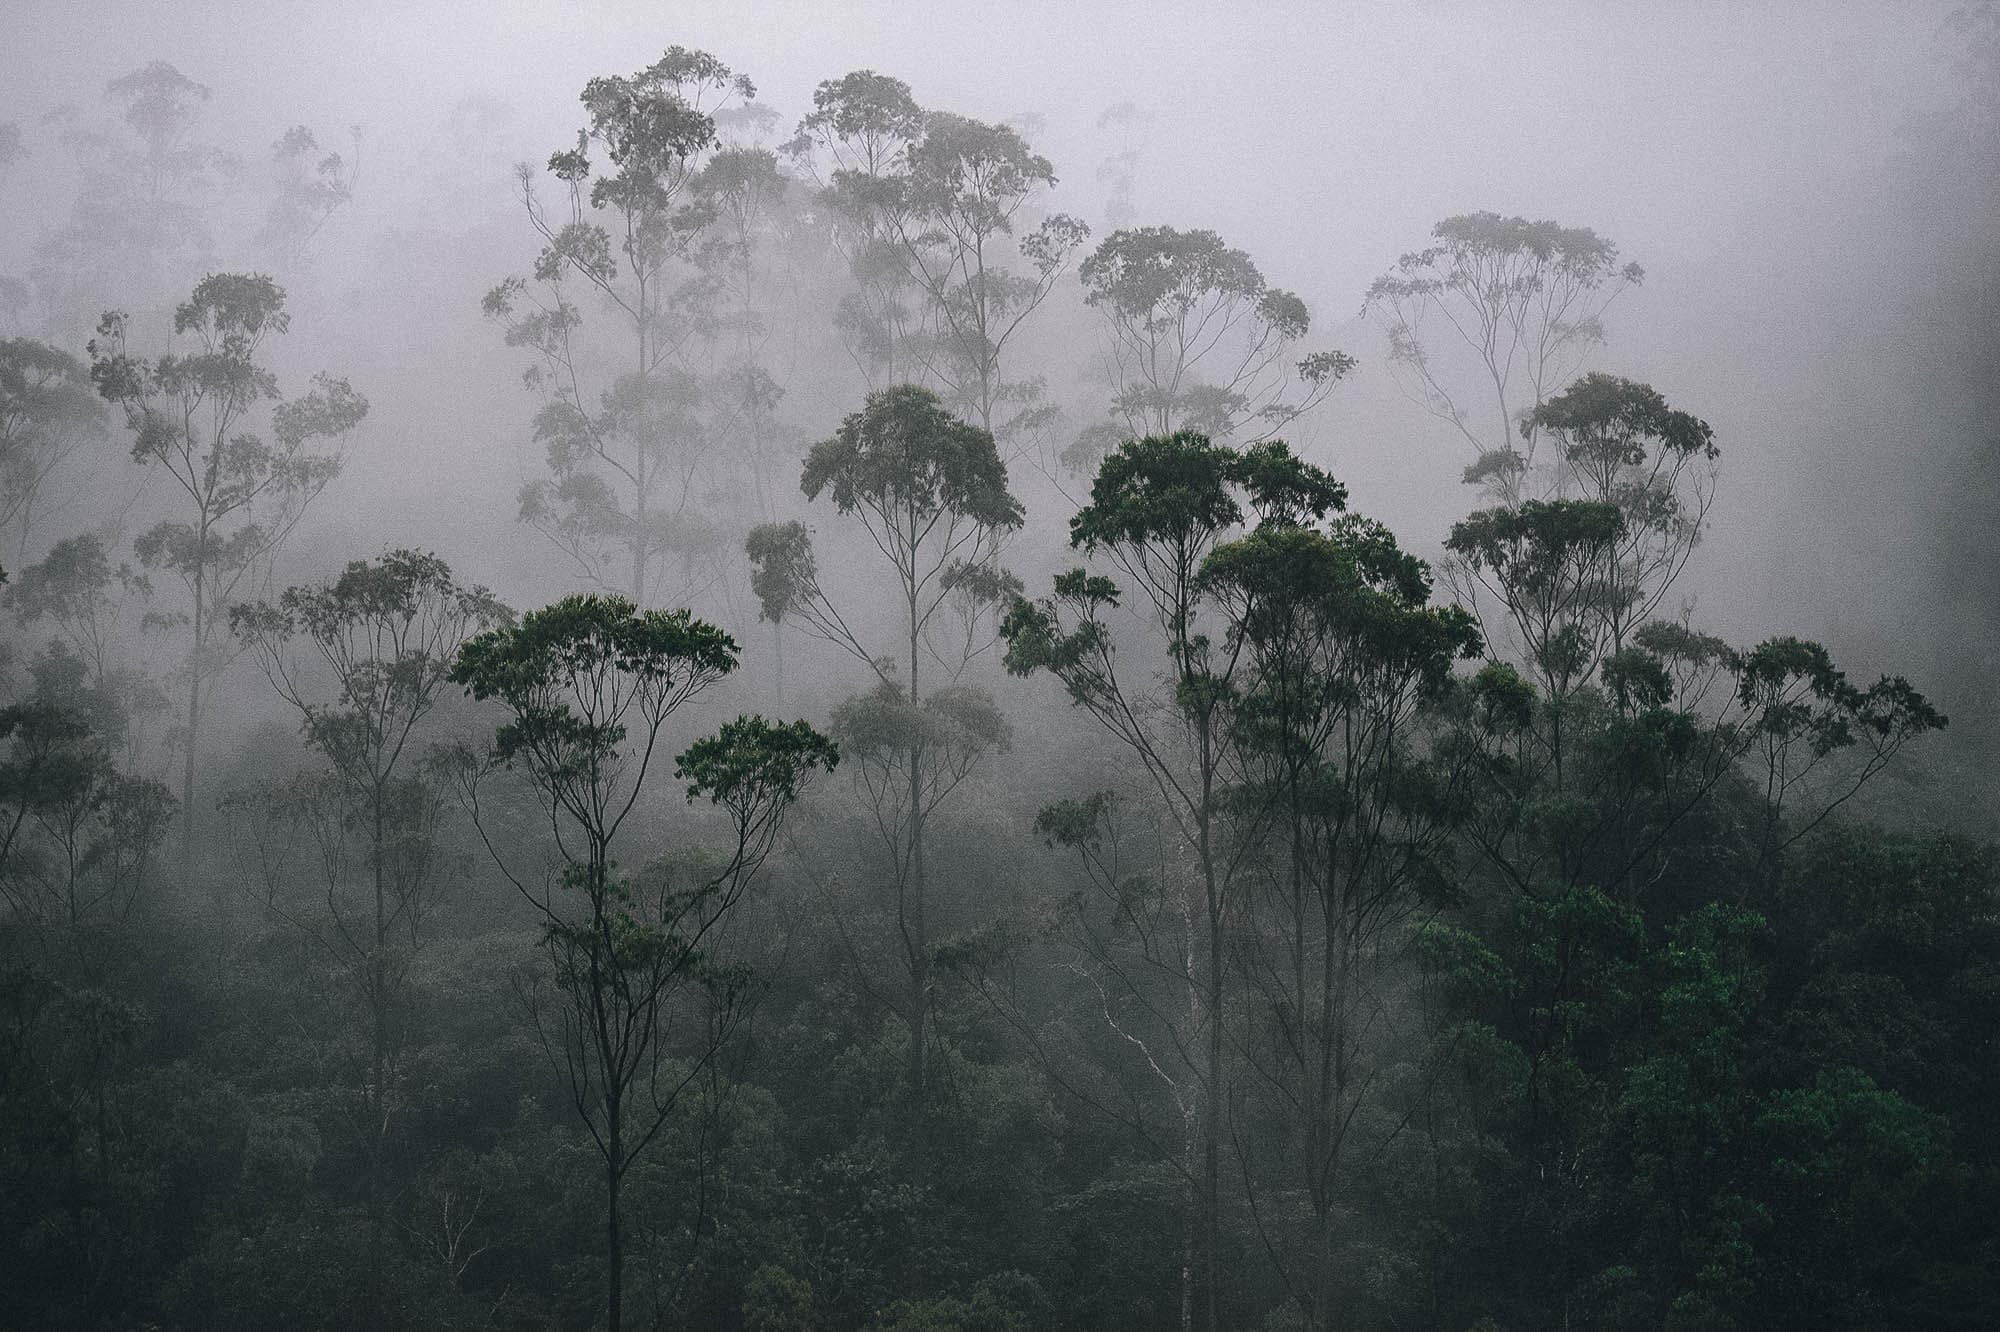 Misty rainy weather in the heart of Periyar National Park, Kerala